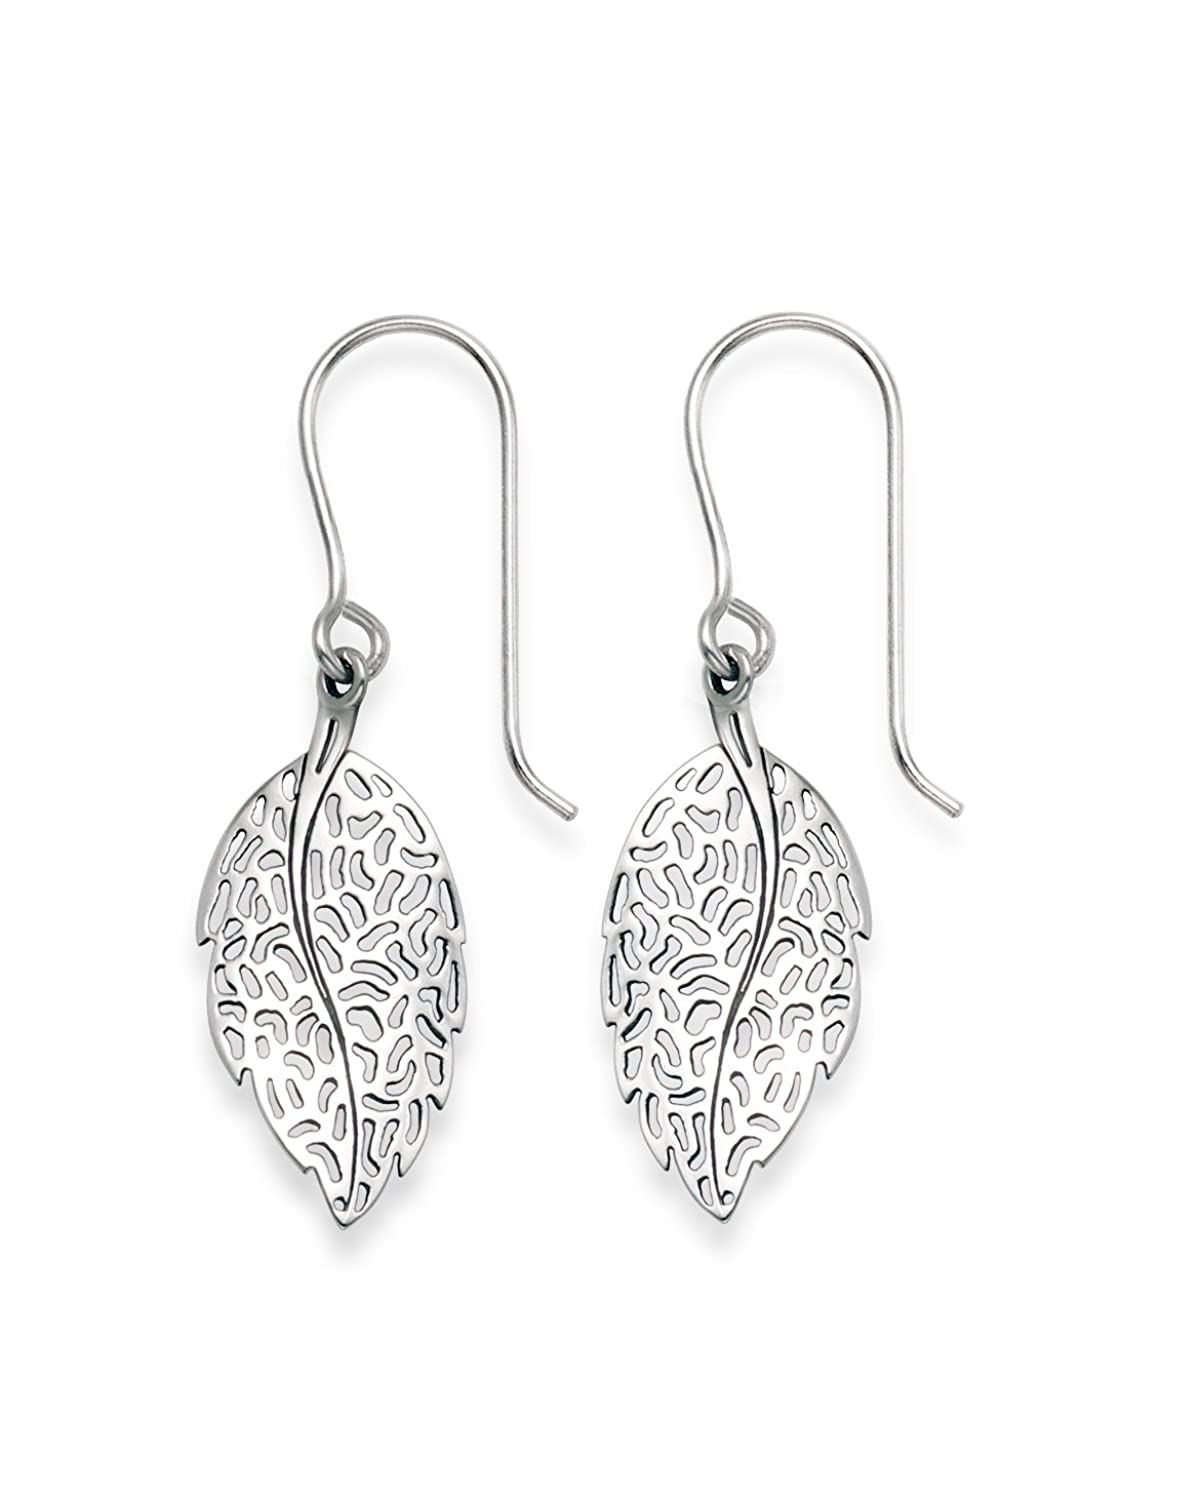 Genuine 925 Silver  Sterling Silver Leaf Earrings  Size: 11 X 20mm 6041  Gift Boxed: Amazon: Jewellery